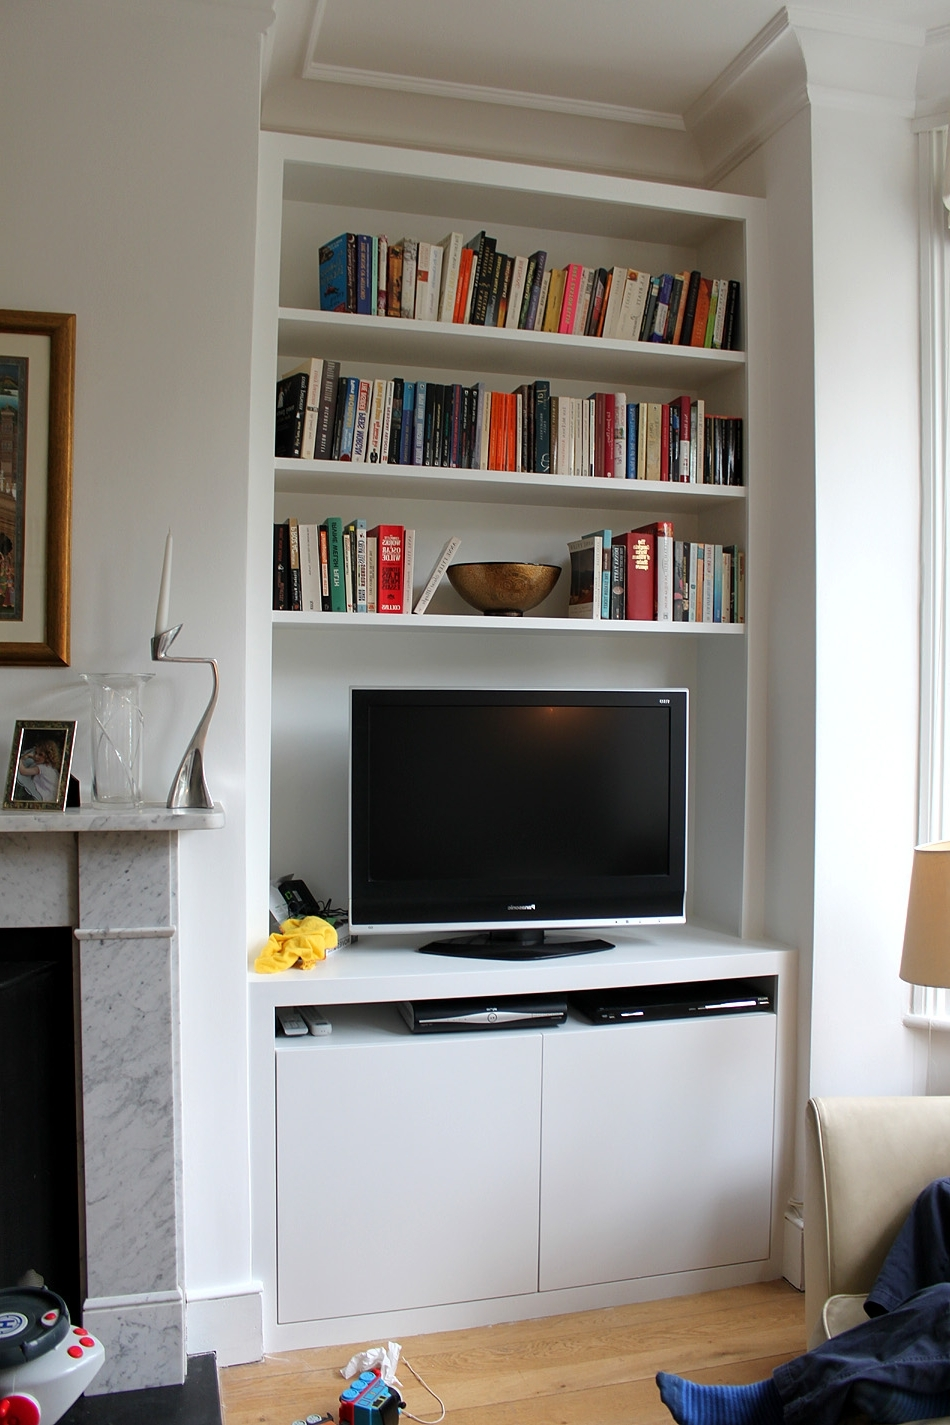 Fitted Wardrobes, Bookcases, Shelving, Floating Shelves, London Intended For Current Bookshelves Tv (View 7 of 15)